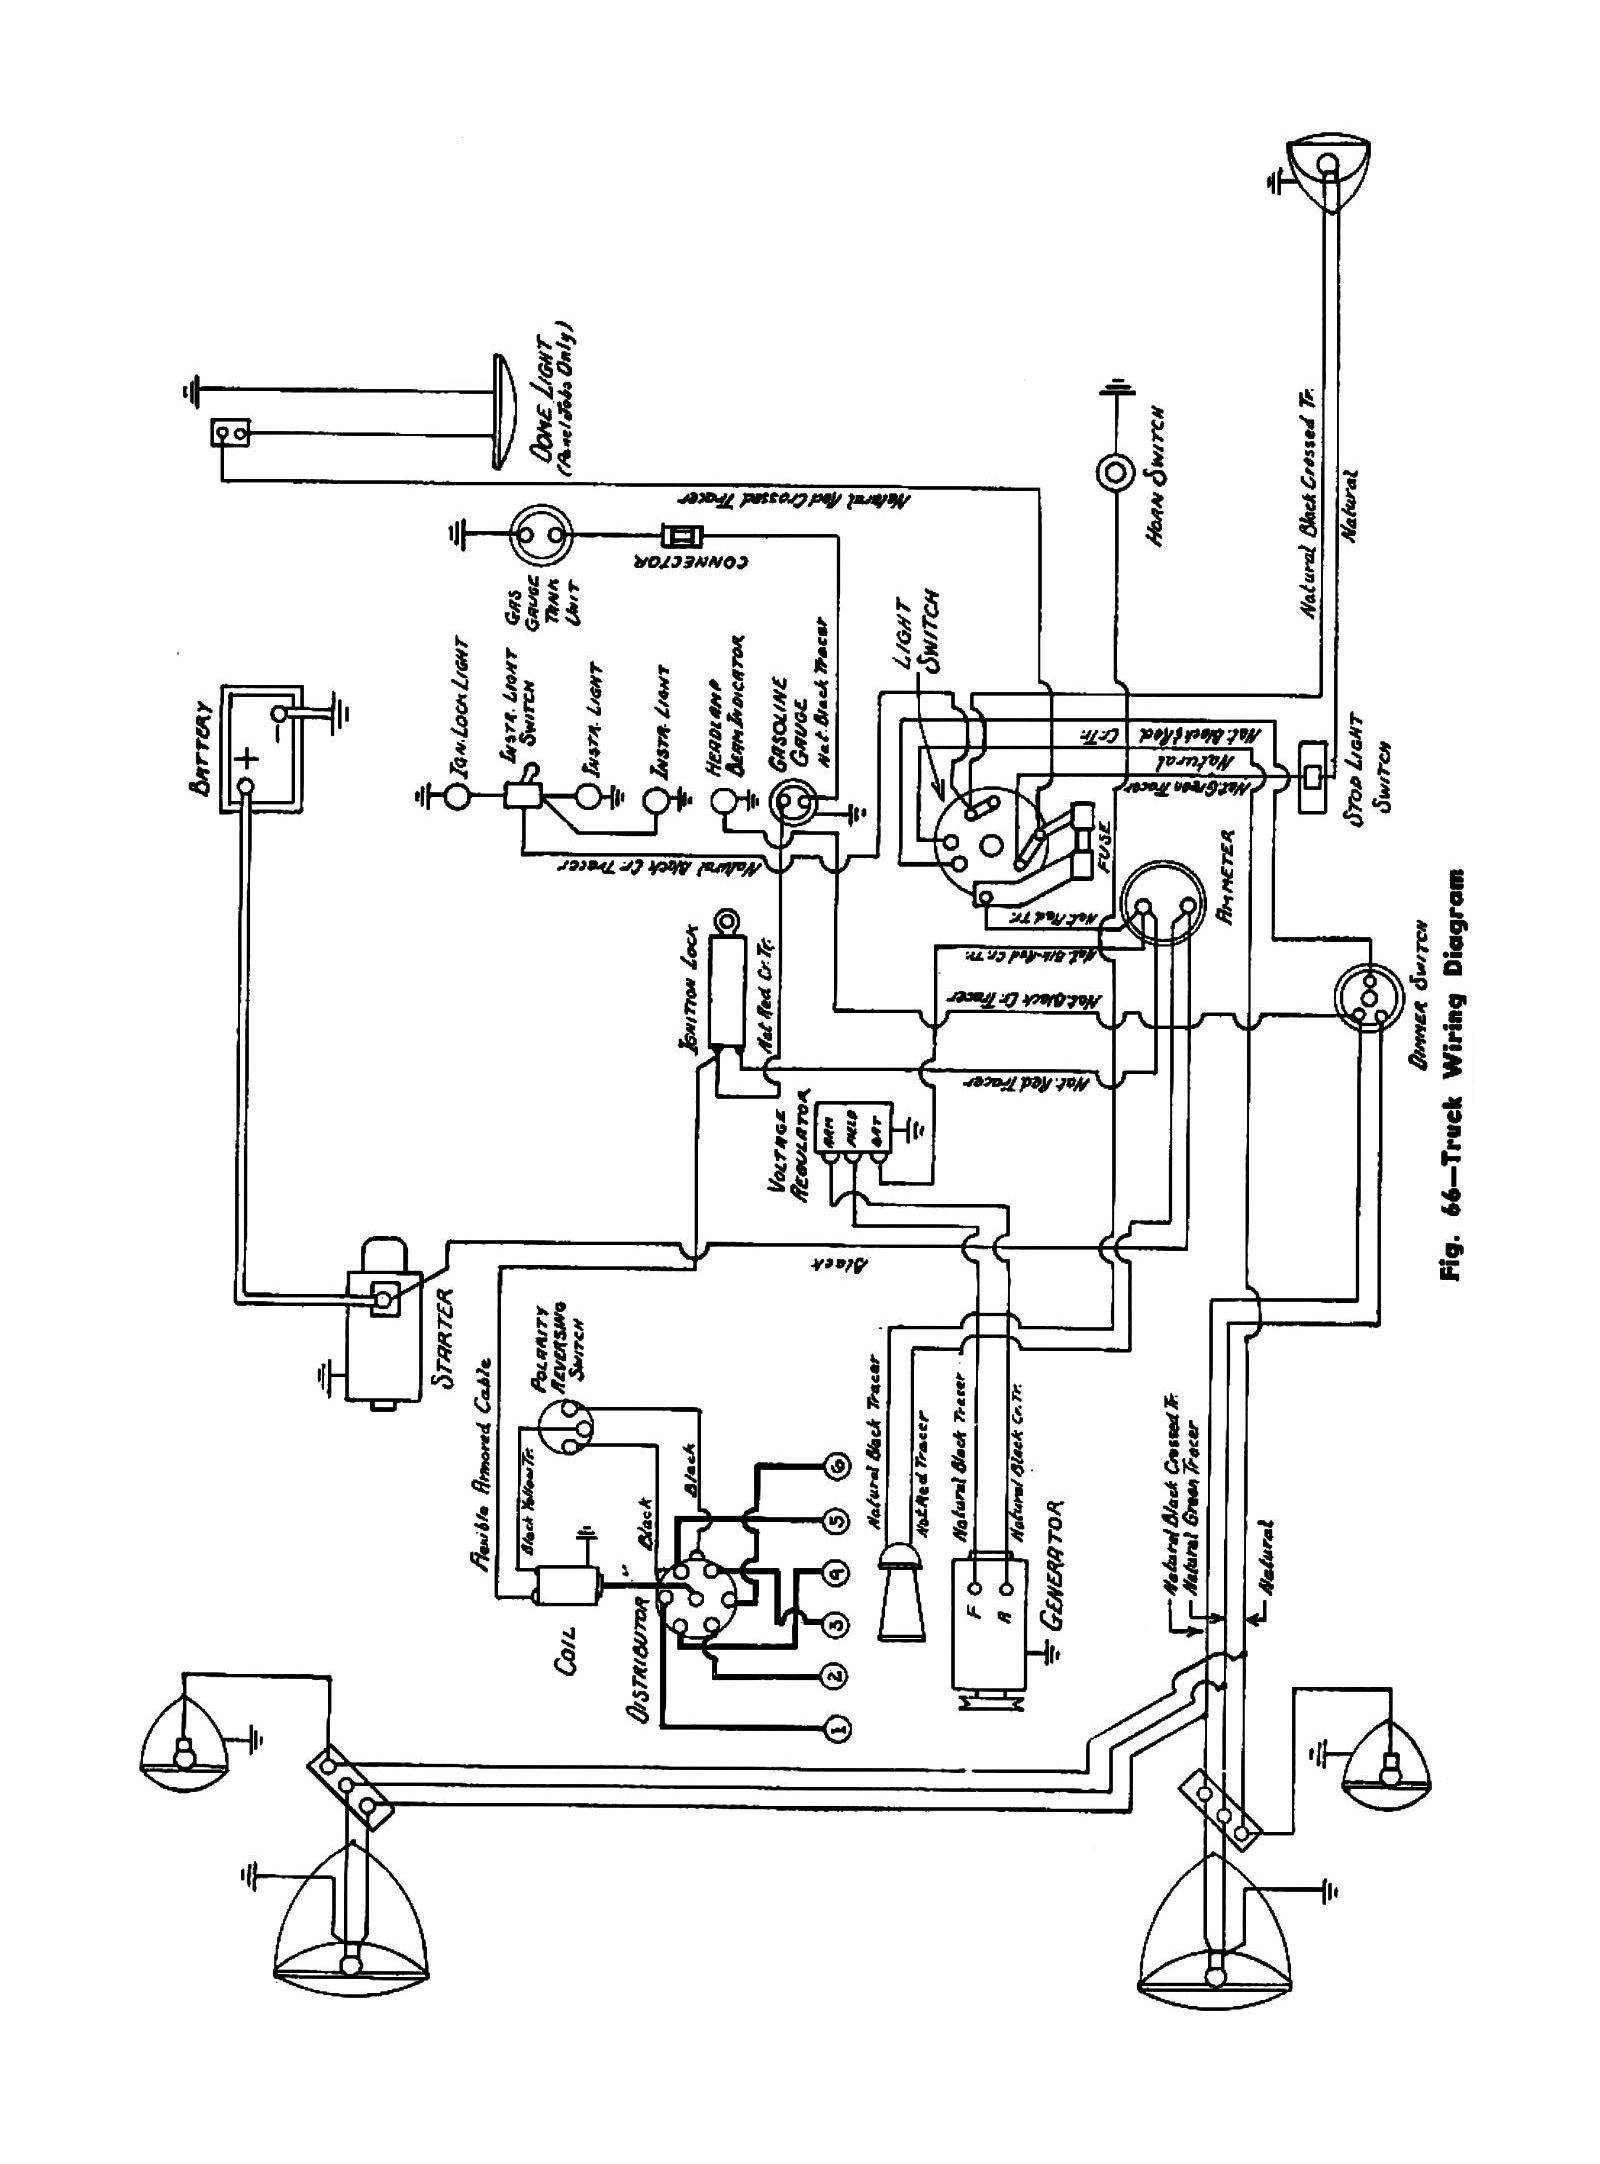 Gm Truck Fuse Box Electrical Diagrams Schematics Mack Panel Diagram Chevy Wiring Hub Bearing